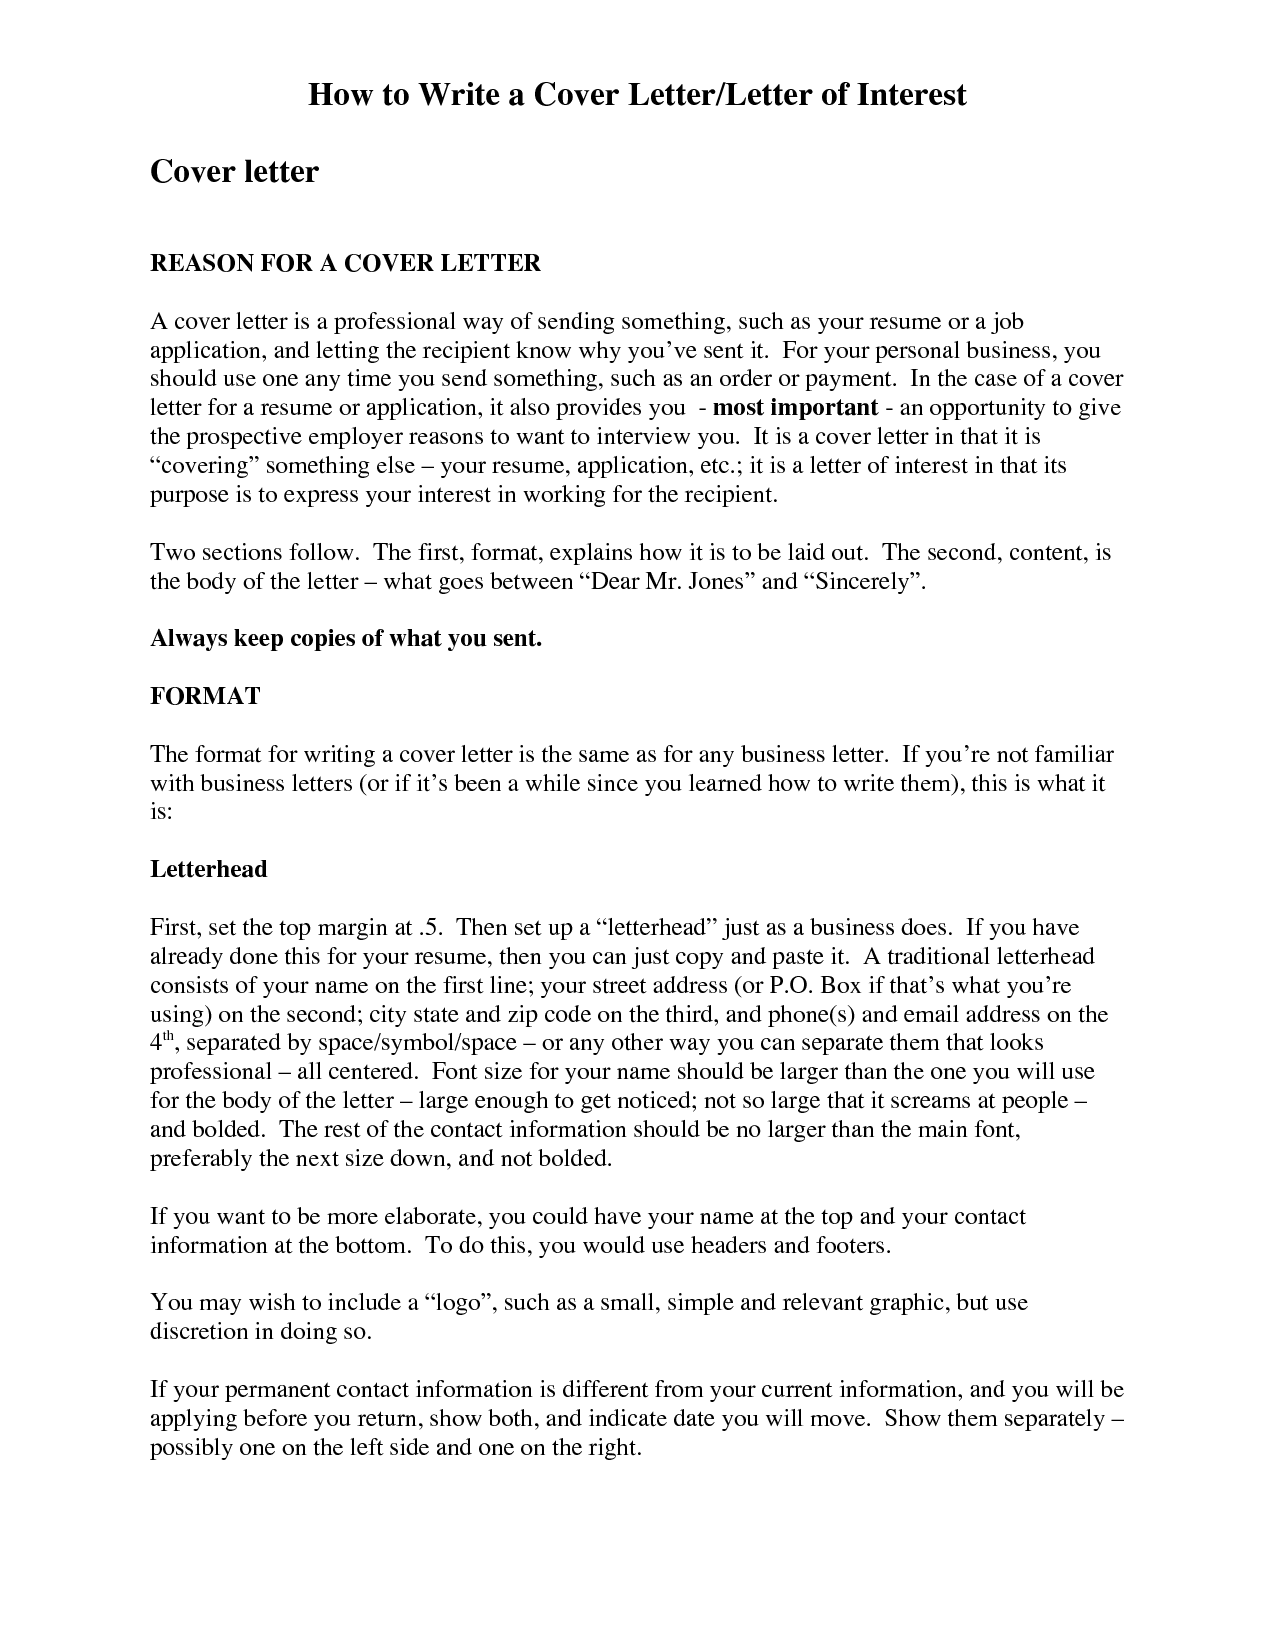 how to write a cover letter of interest example for a job how to wrie a cover letter of interest or basic letter of interest resume template